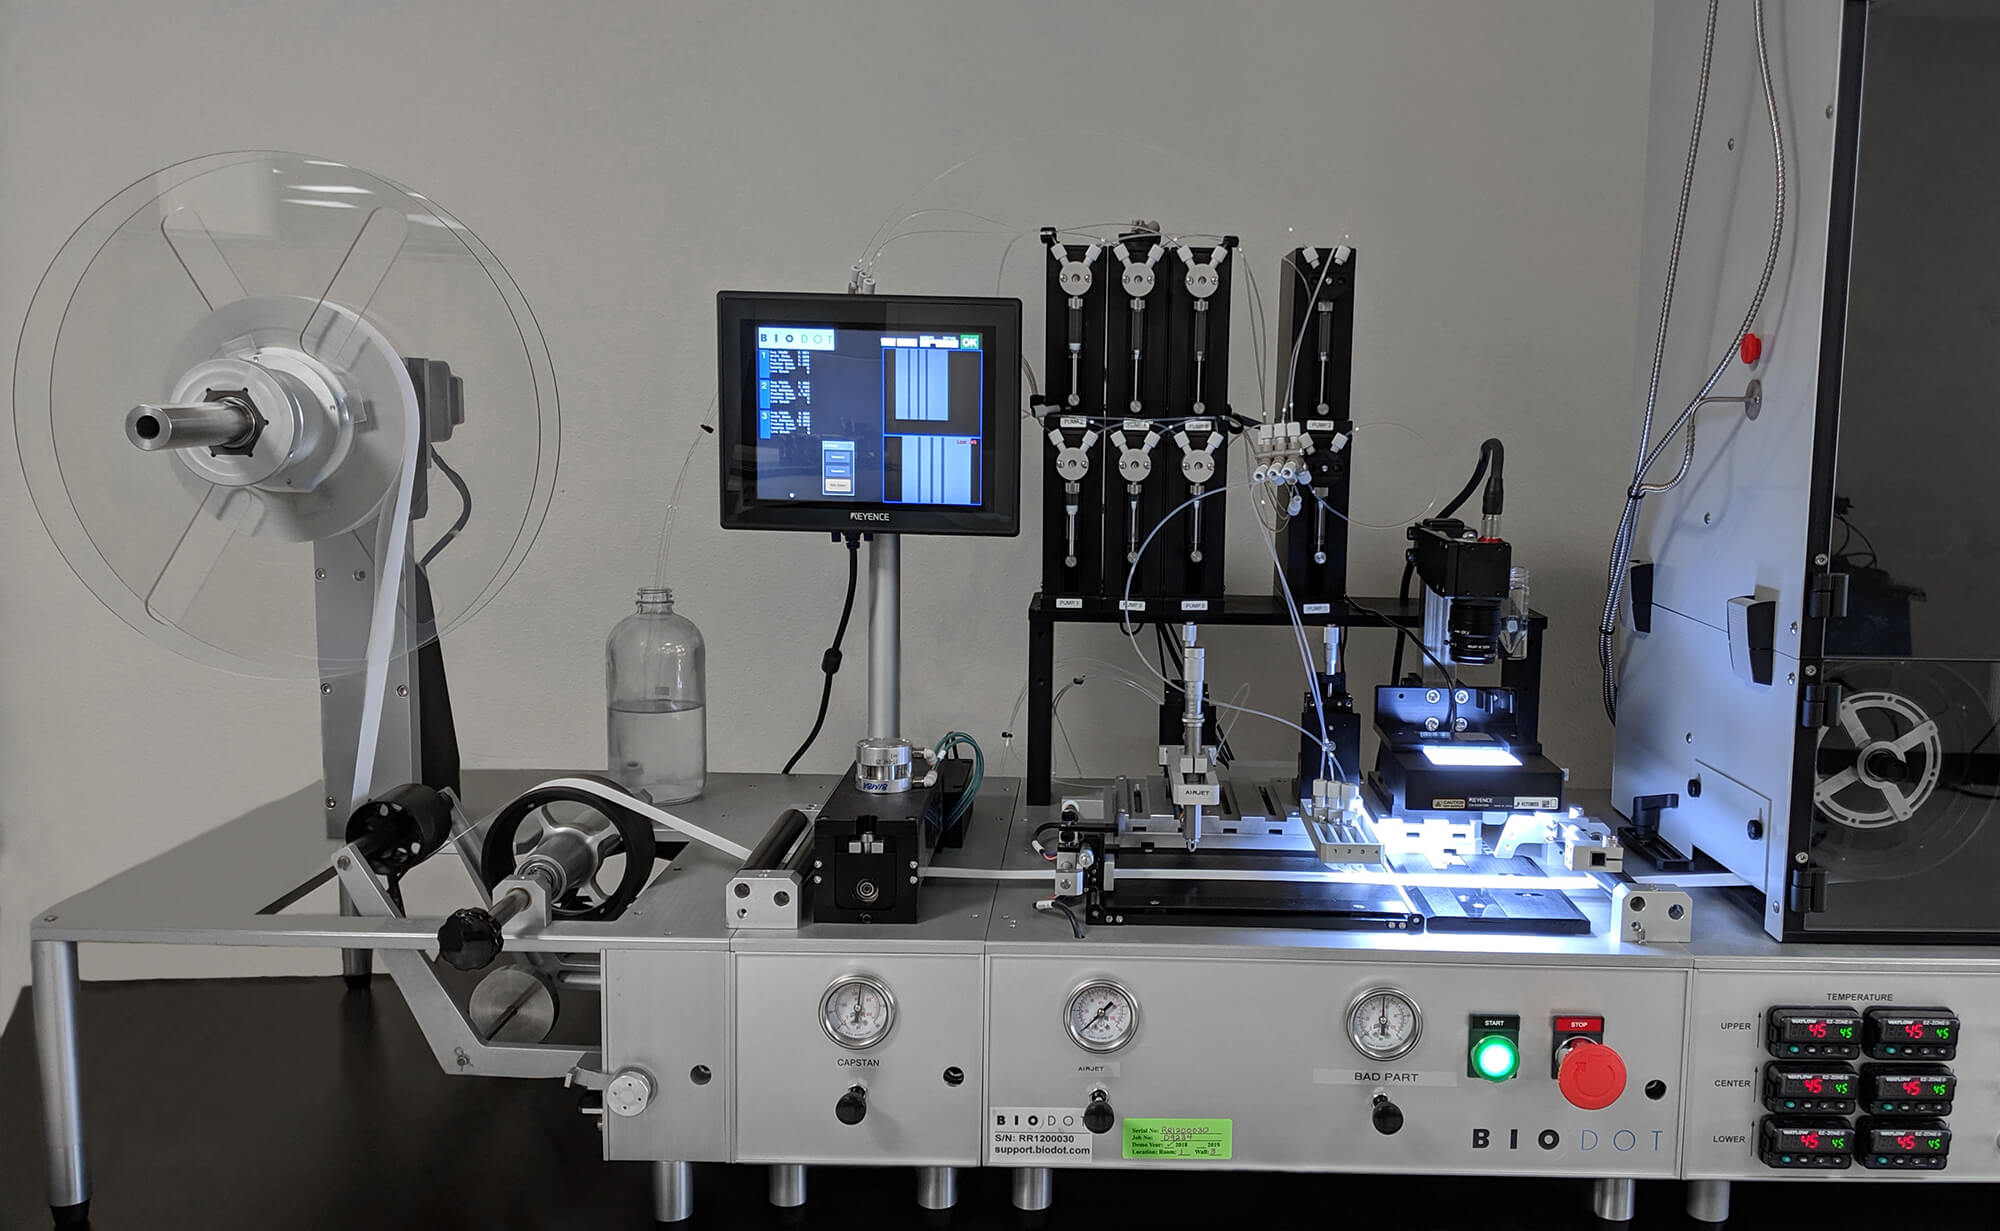 RR120 Dispense Module with Vision Inspection